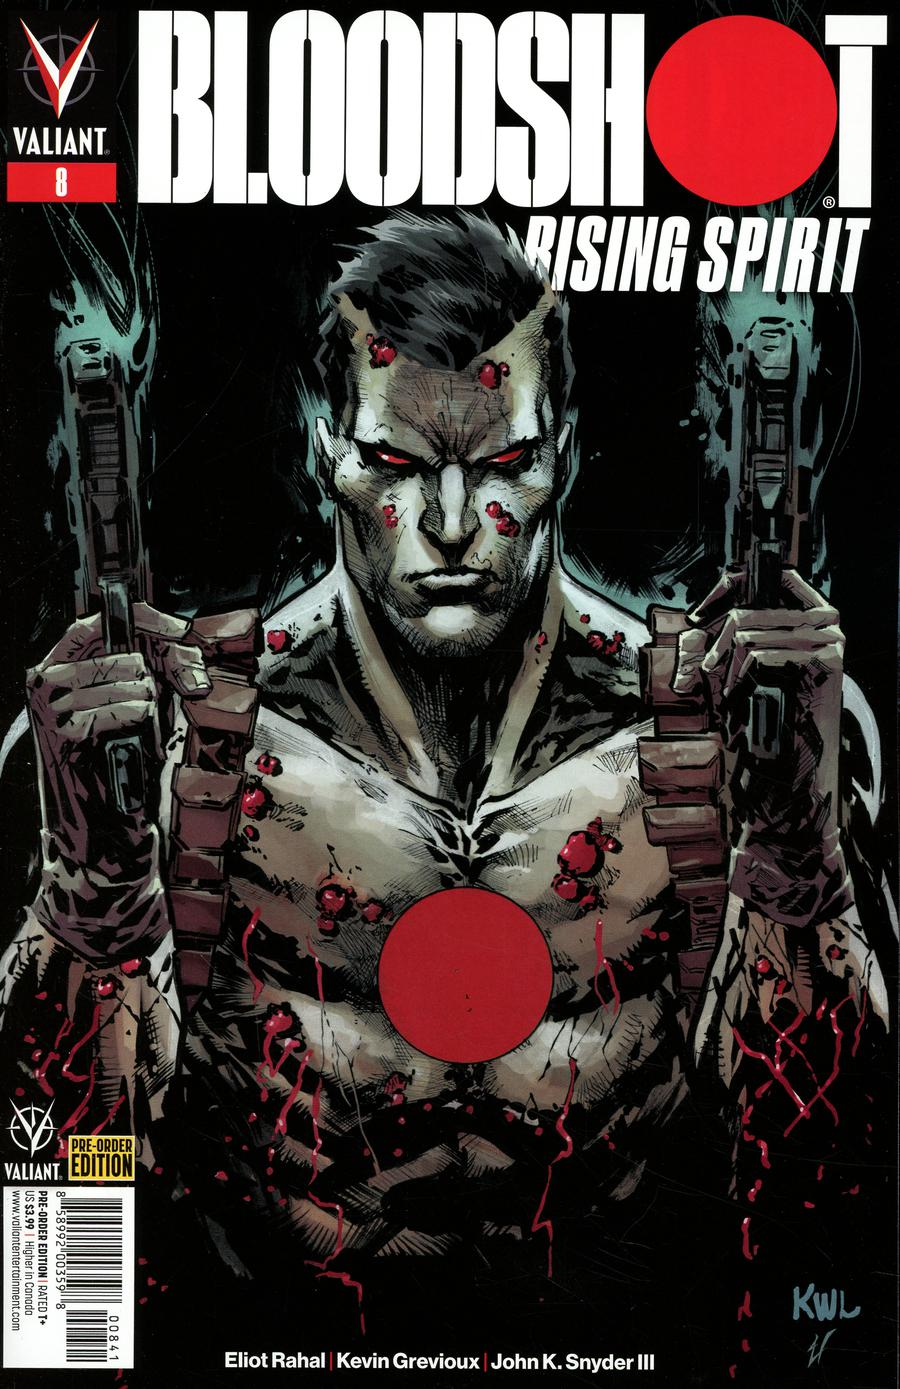 Bloodshot Rising Spirit #8 Cover D Variant Ken Lashley Cover